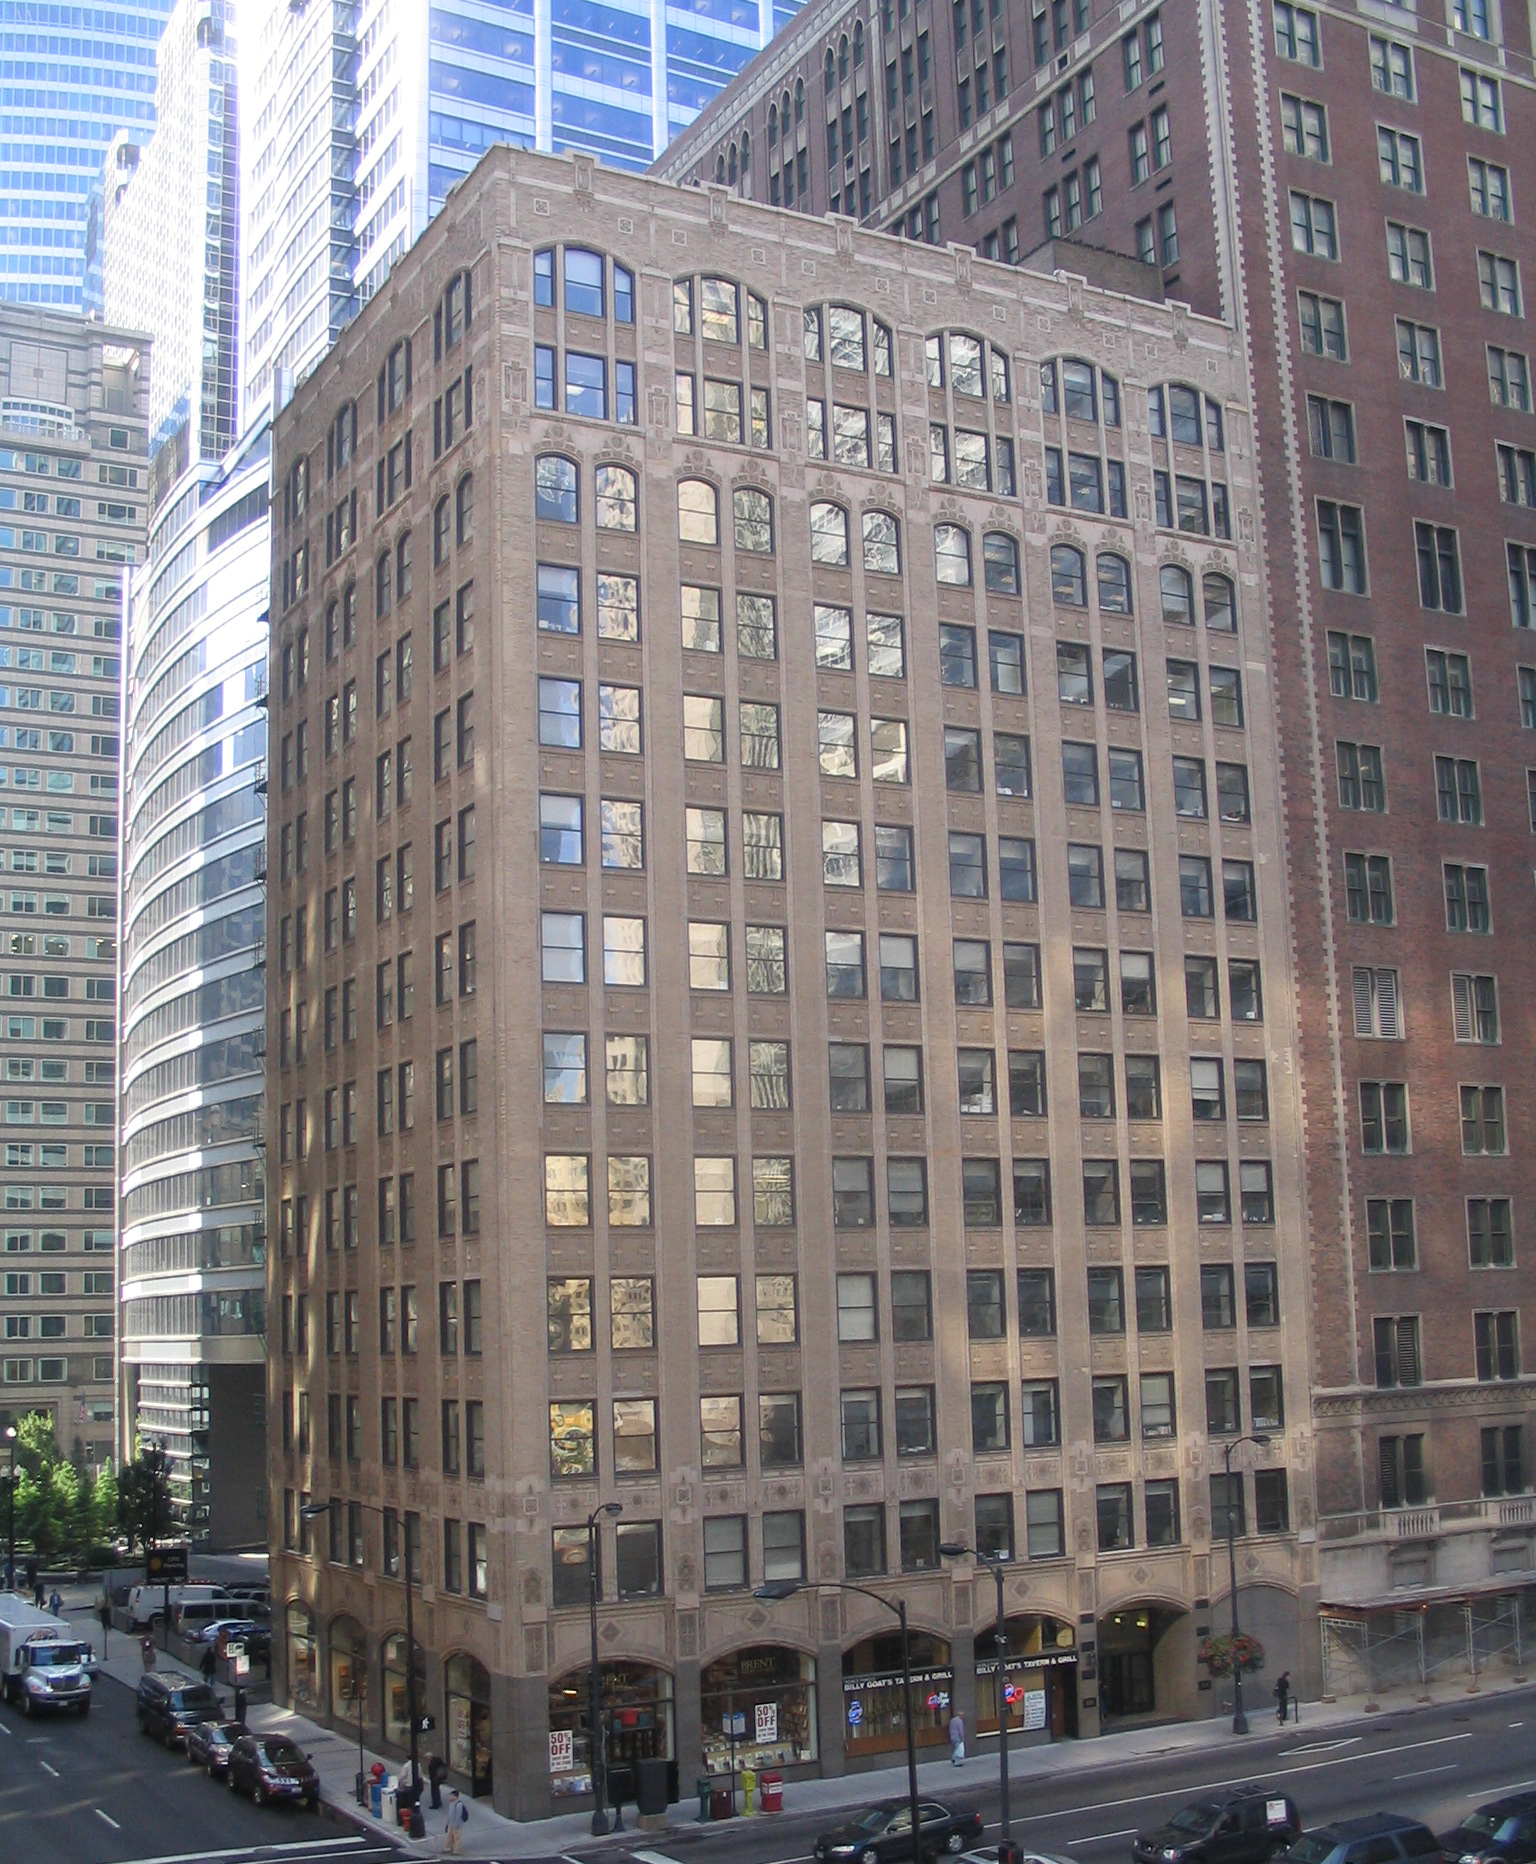 309 W Washington building